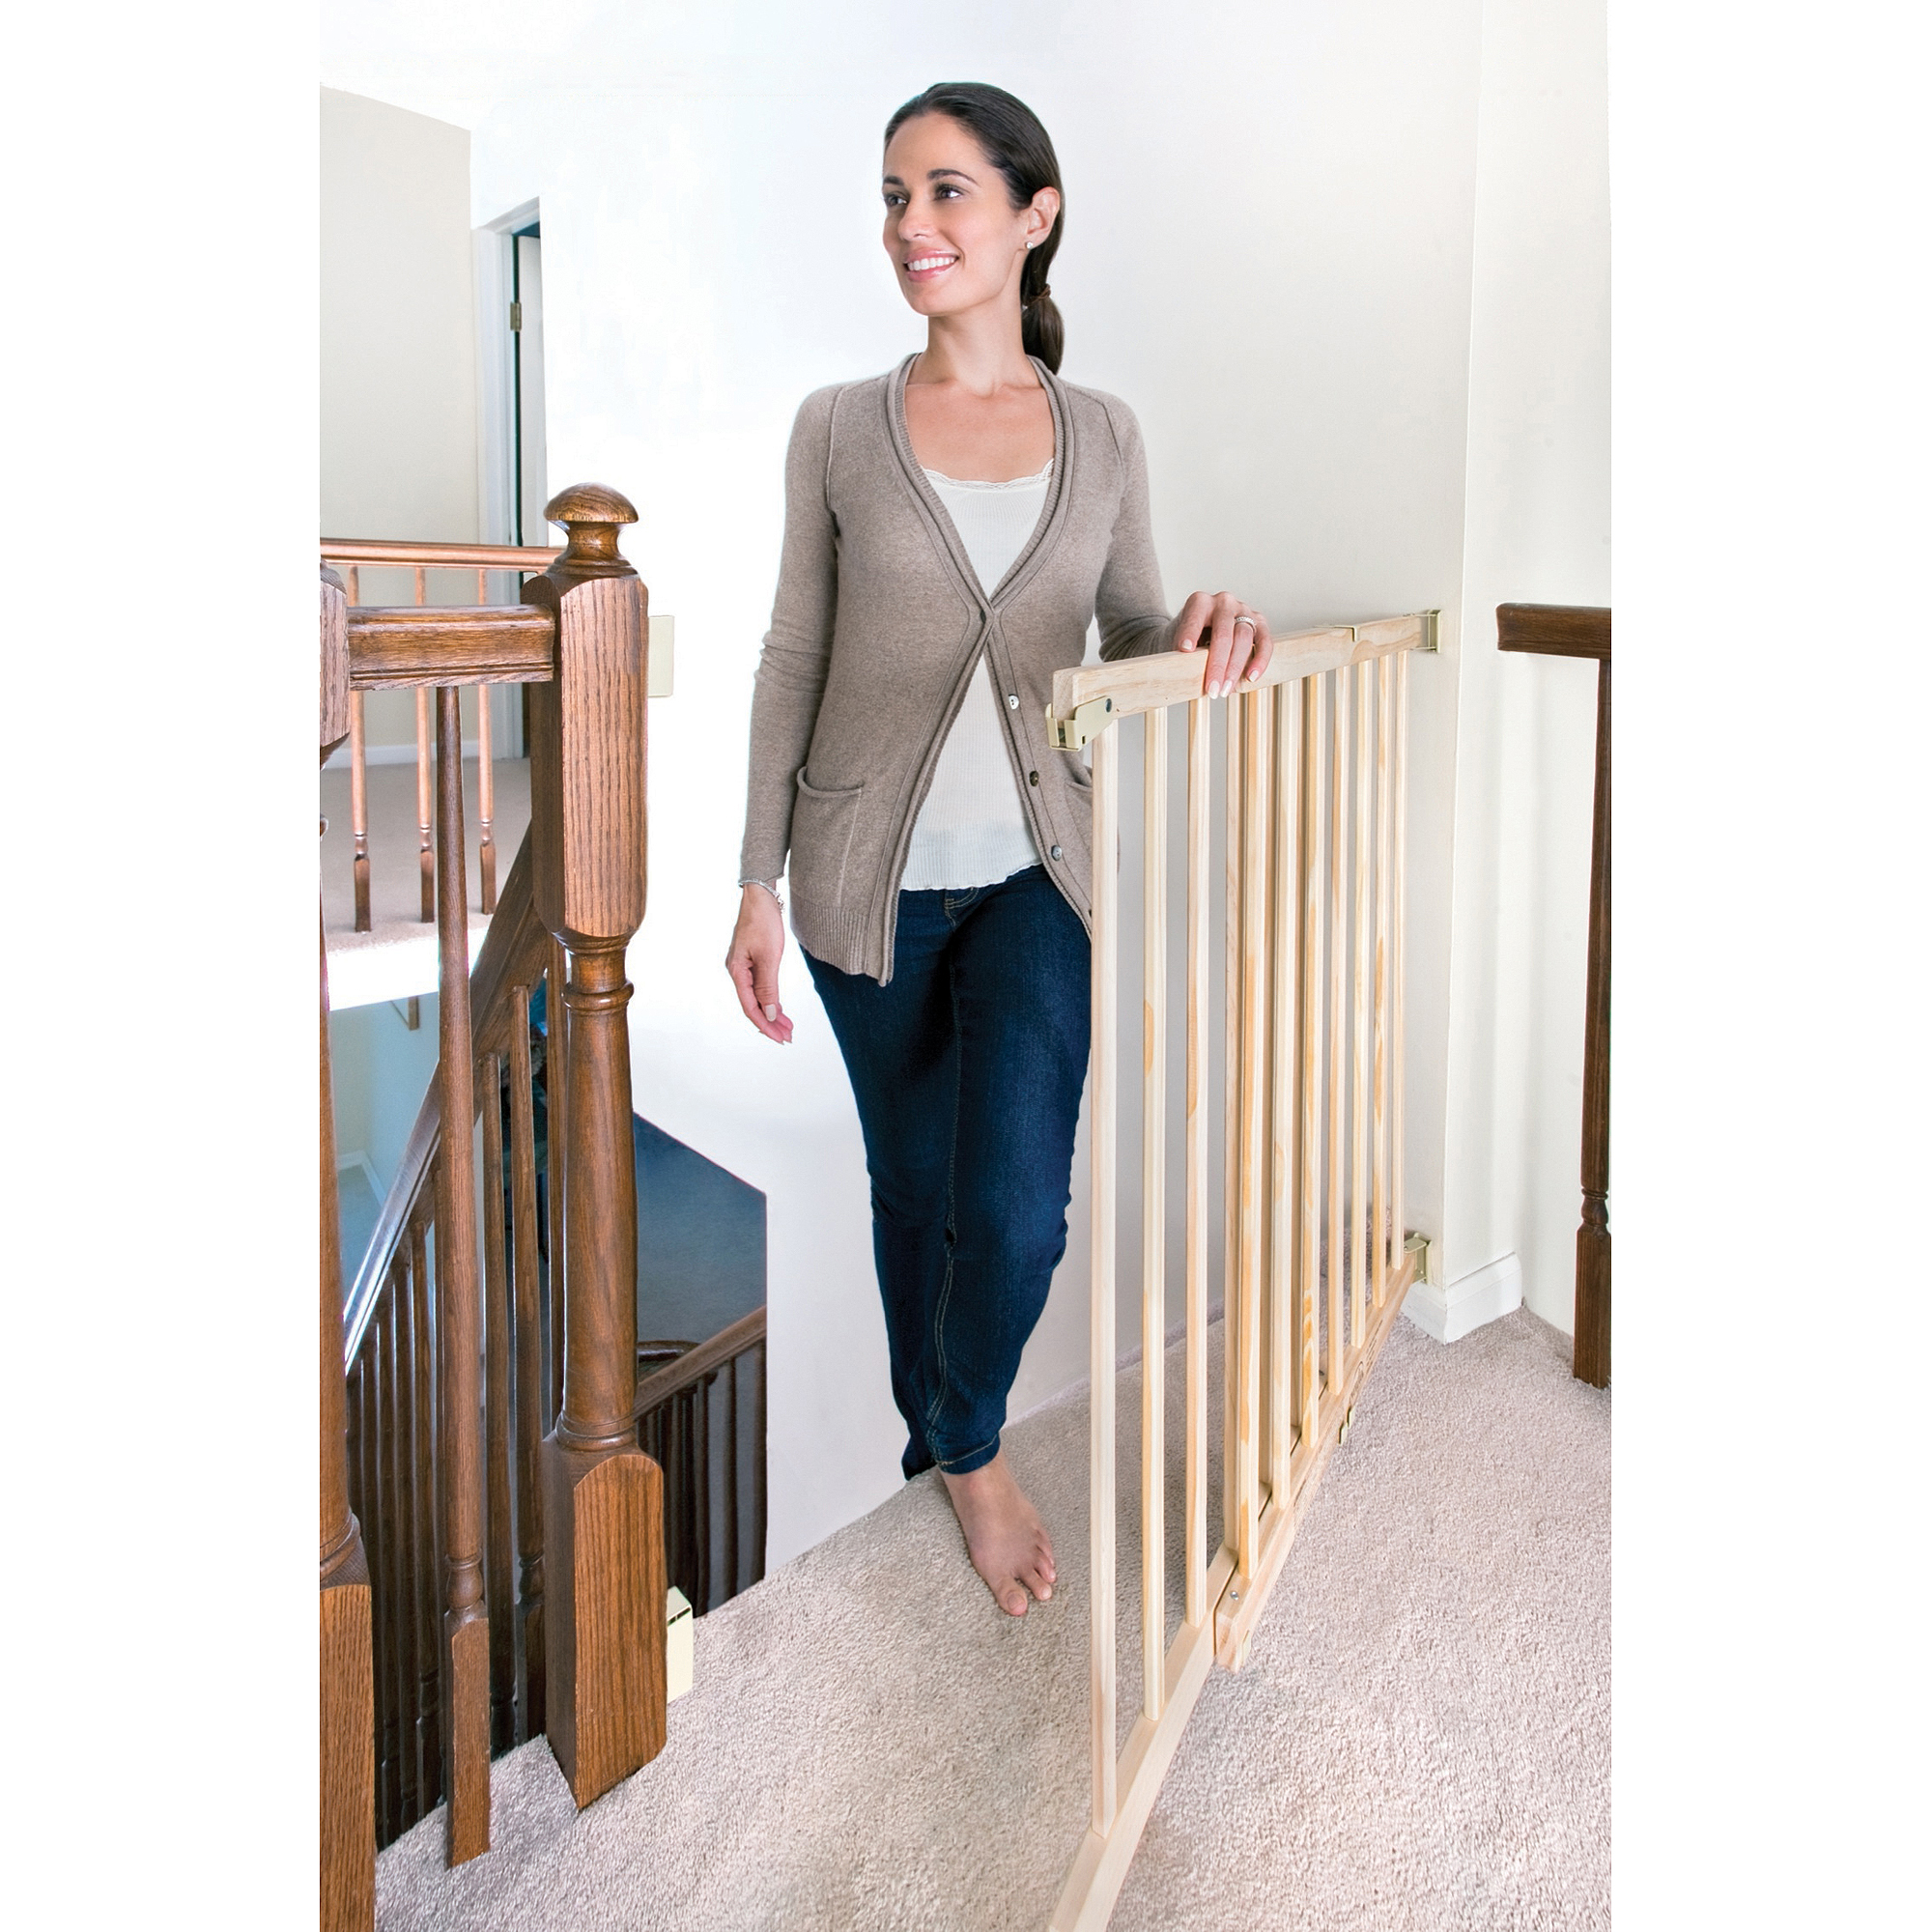 Evenflo - Top of the Stairs Extra-Tall Gate